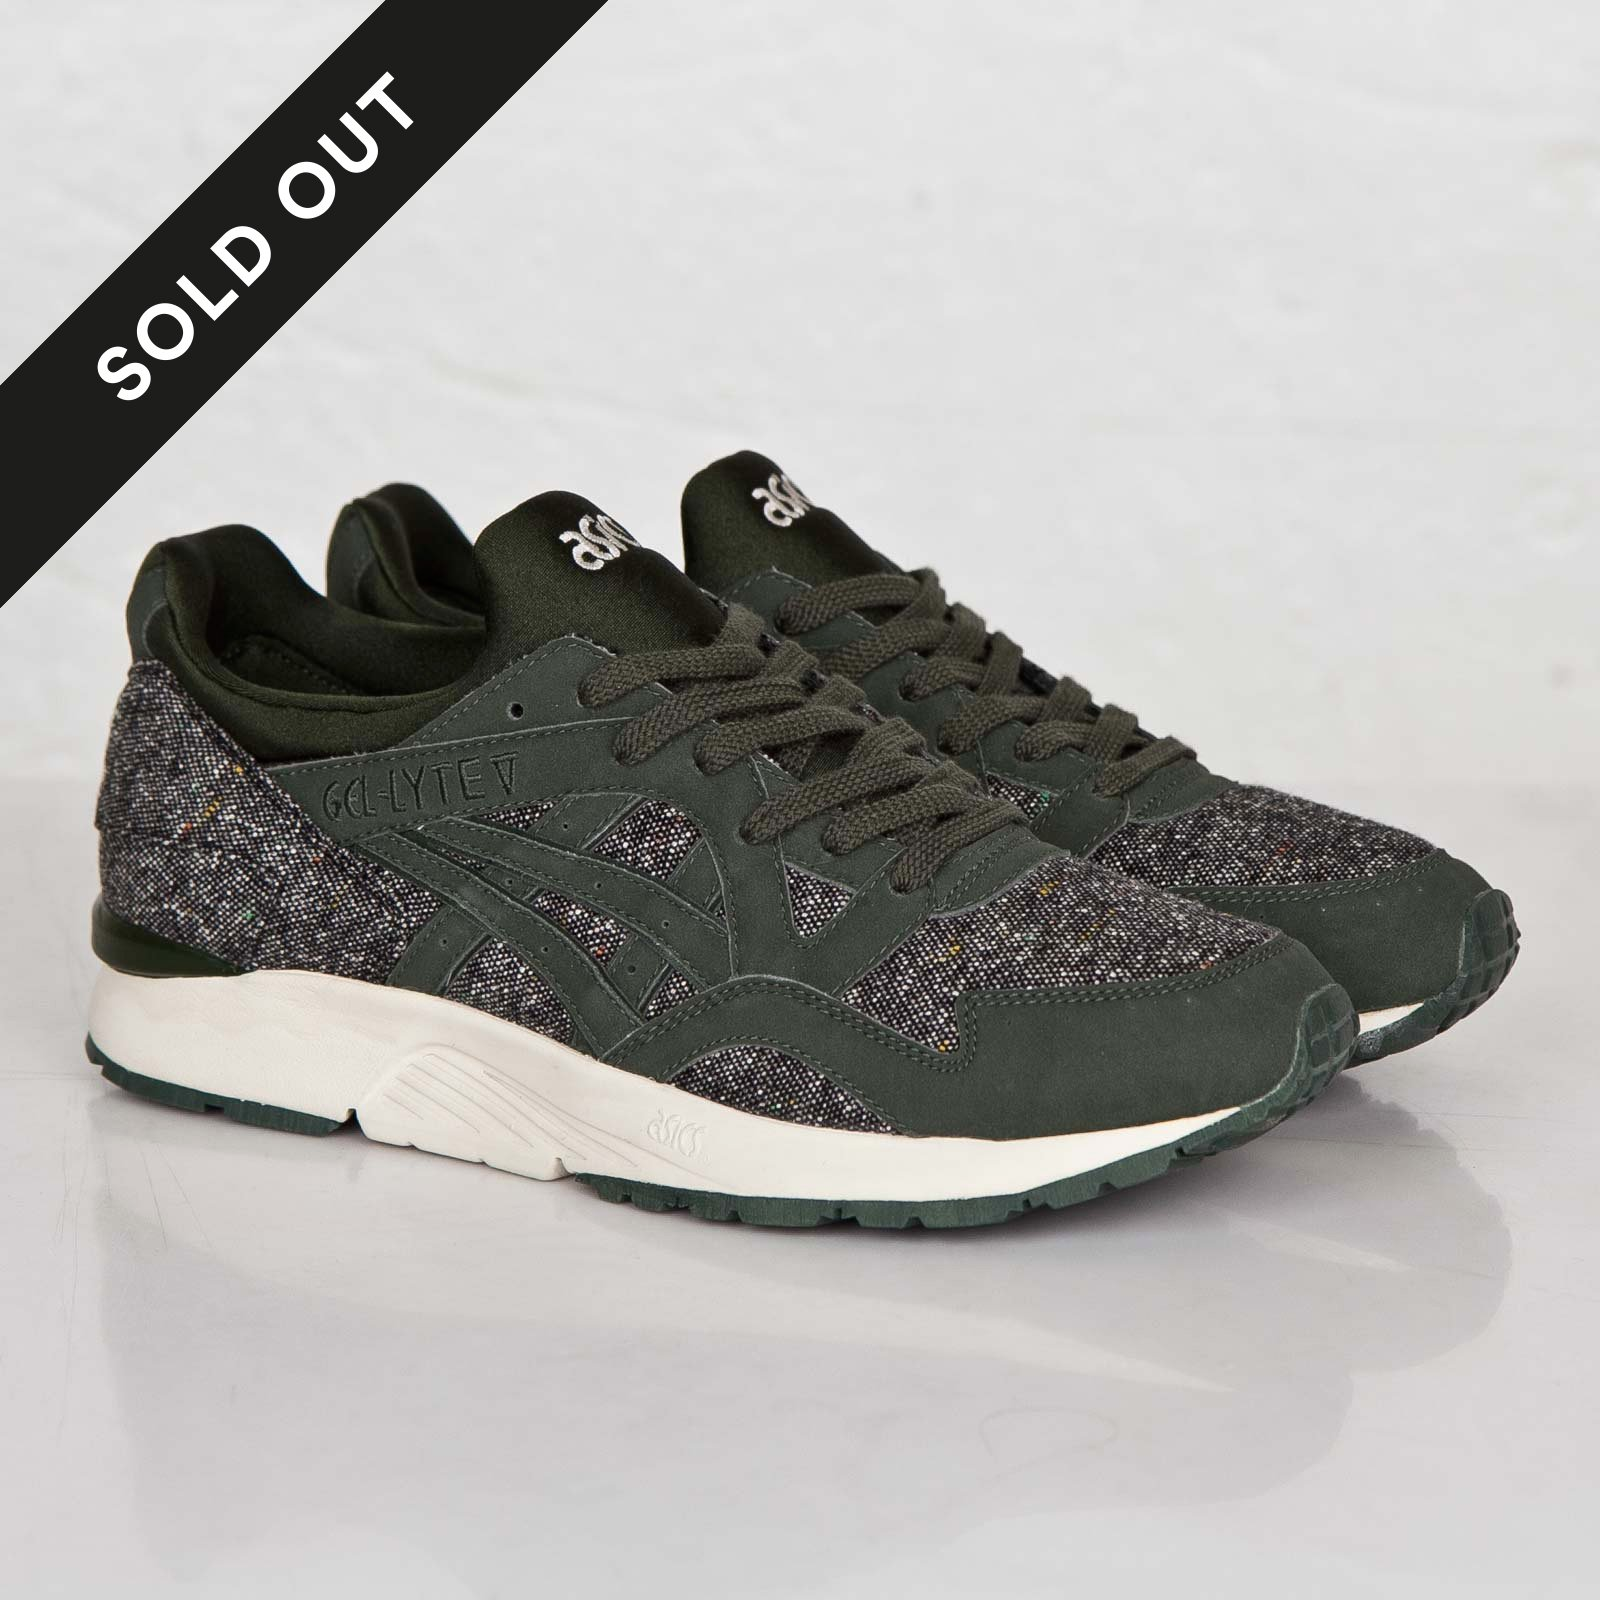 huge discount f54ad 0afd8 ASICS Tiger Gel-Lyte V